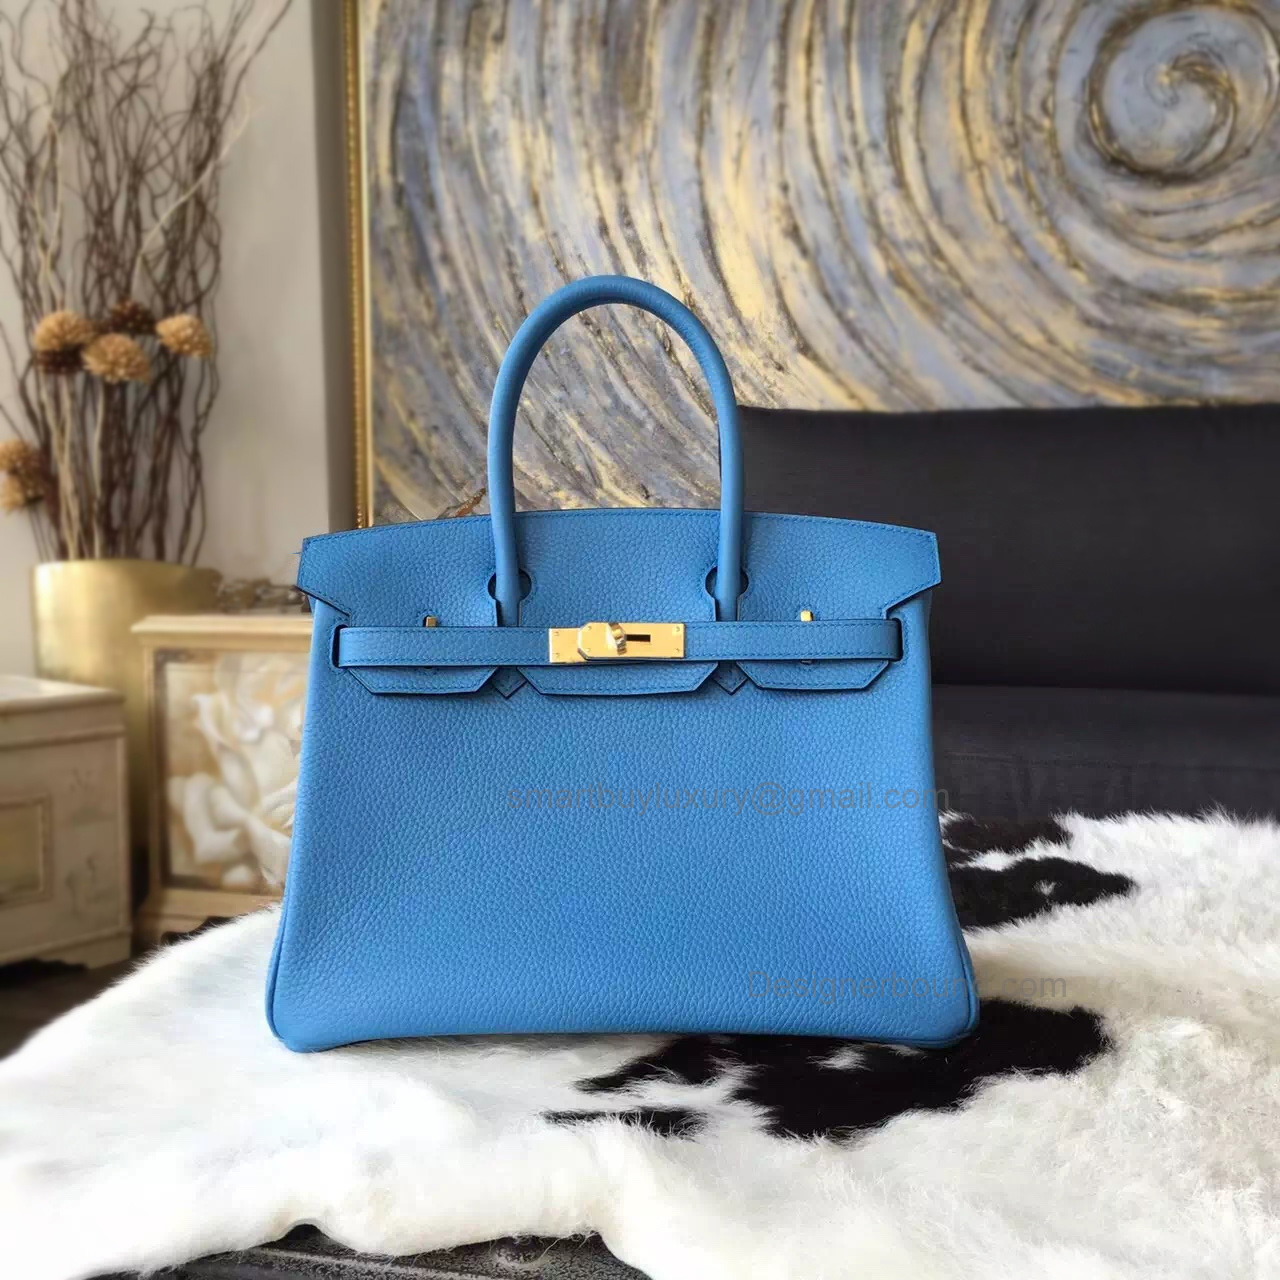 Hand Stitched Hermes Birkin 30 Bag in 2t Blue Paradise Clemence Calfskin GHW